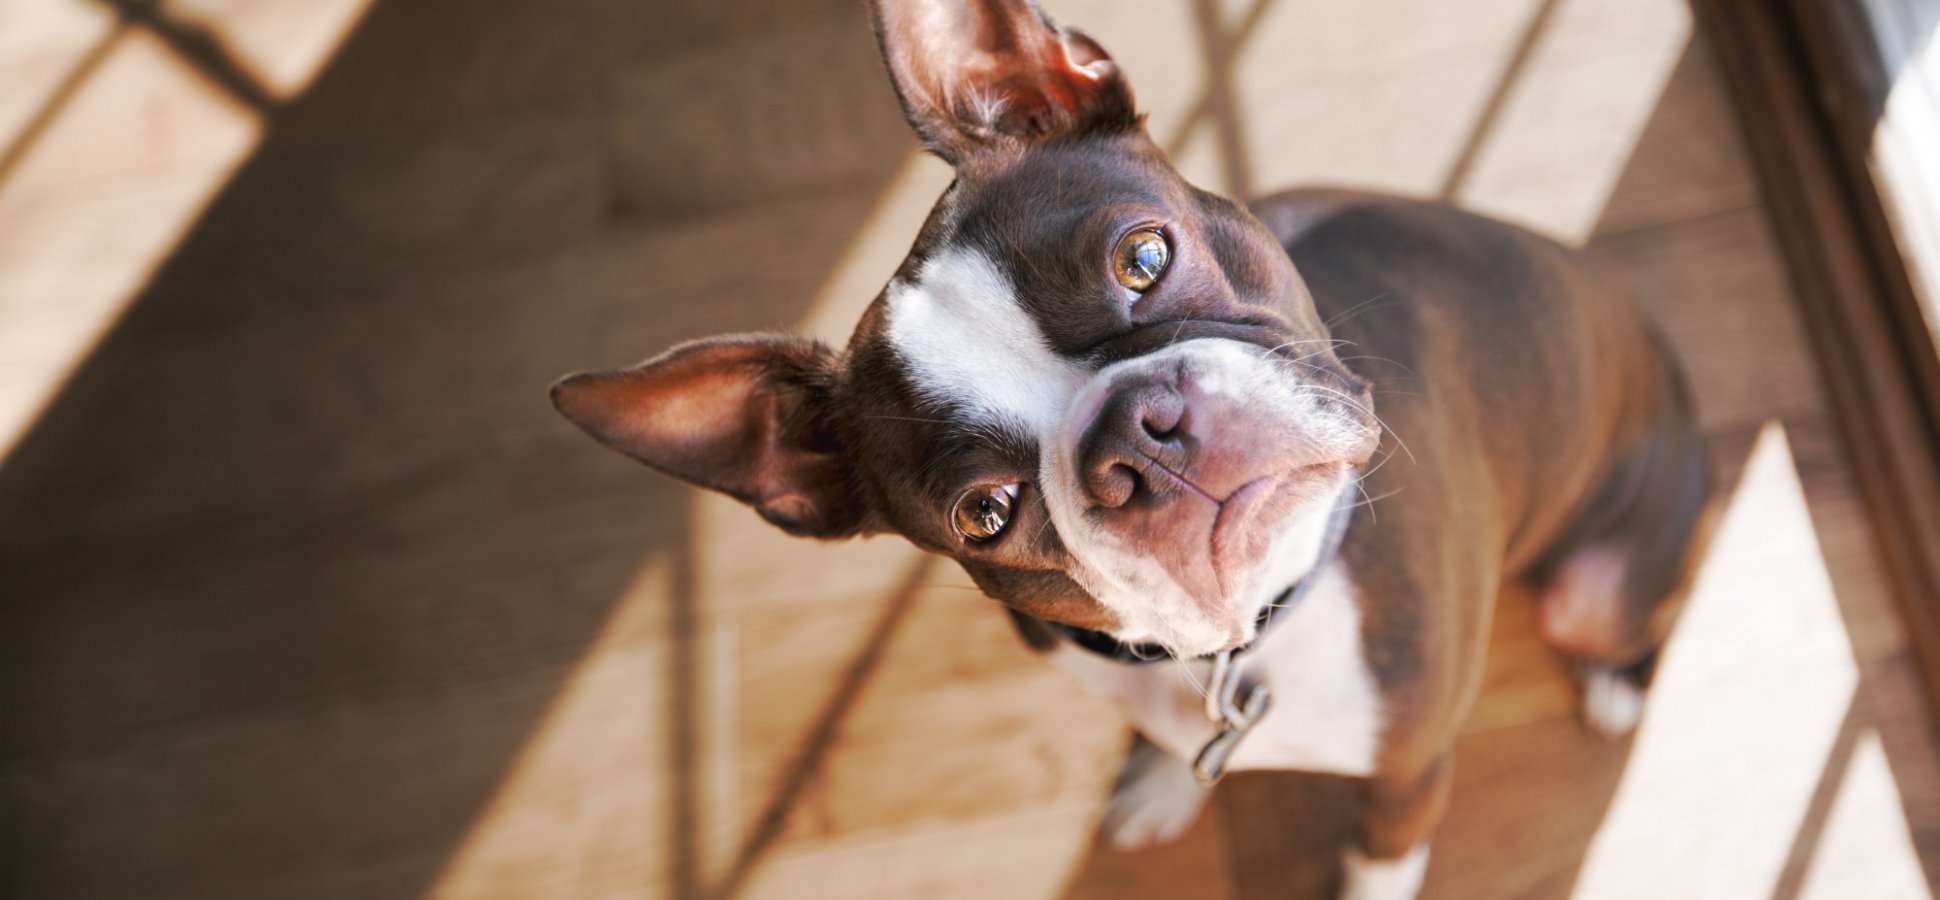 Science: Talking to Your Dog Means You're Smart, Not Crazy